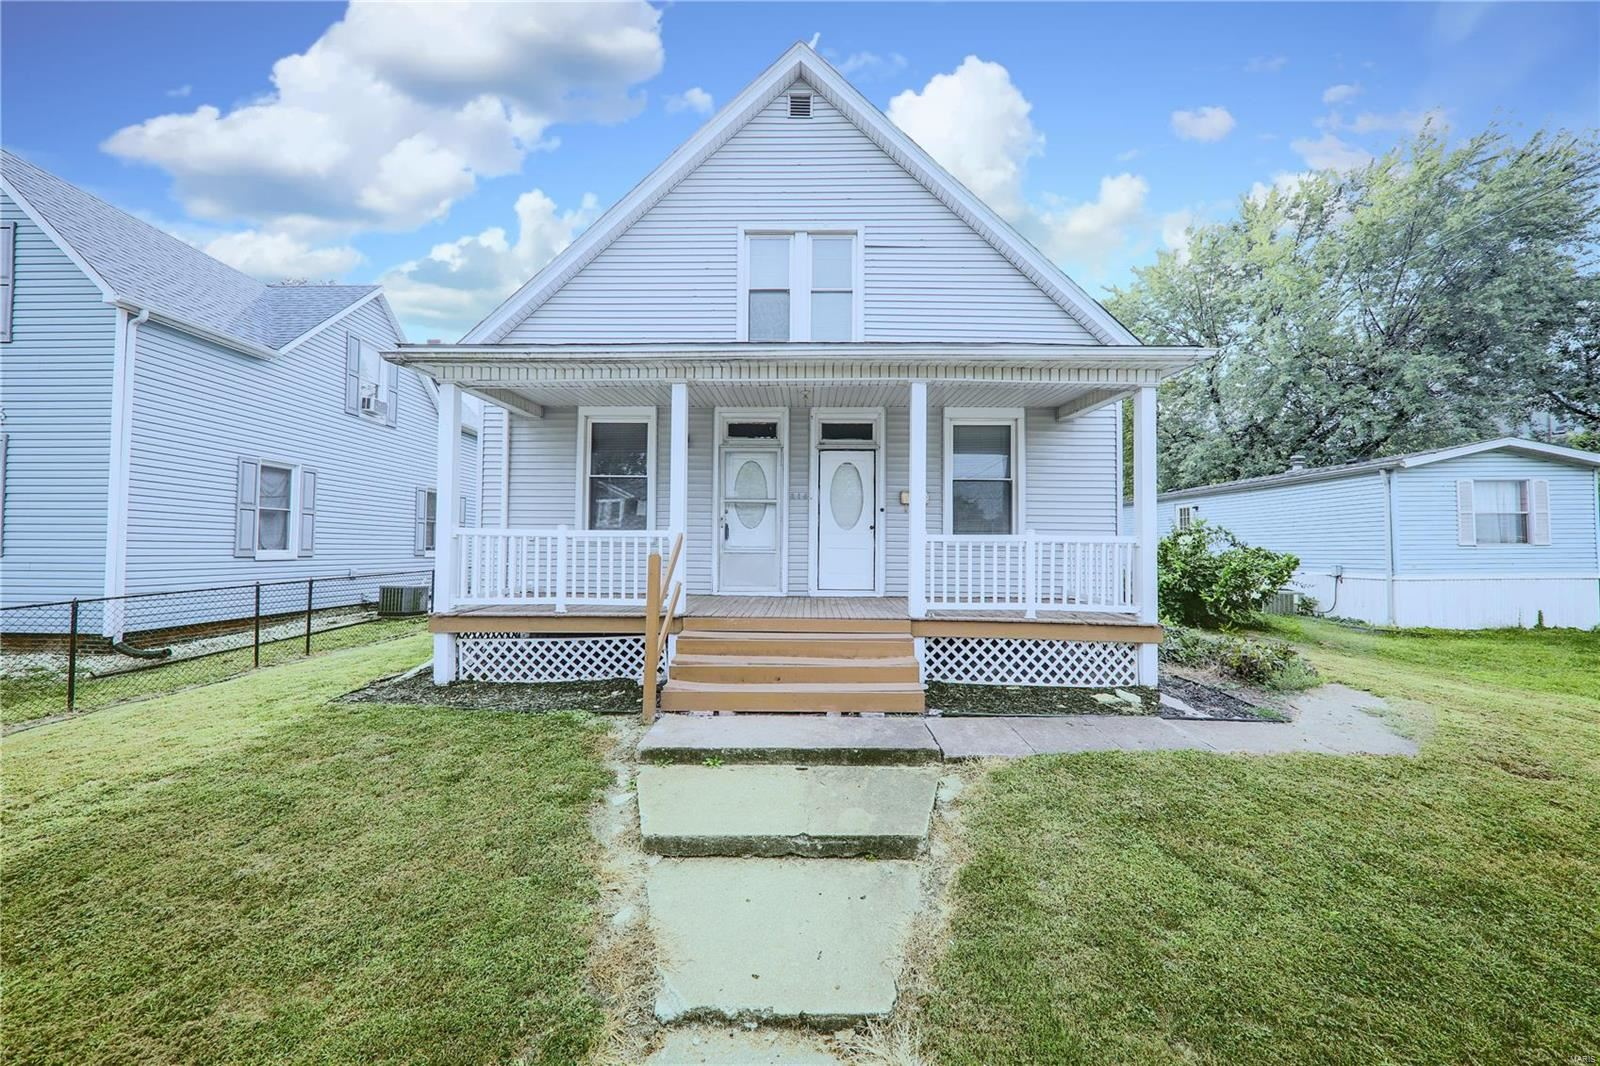 214 South LONG Street, Caseyville, IL 62232 - MLS#: 20023293